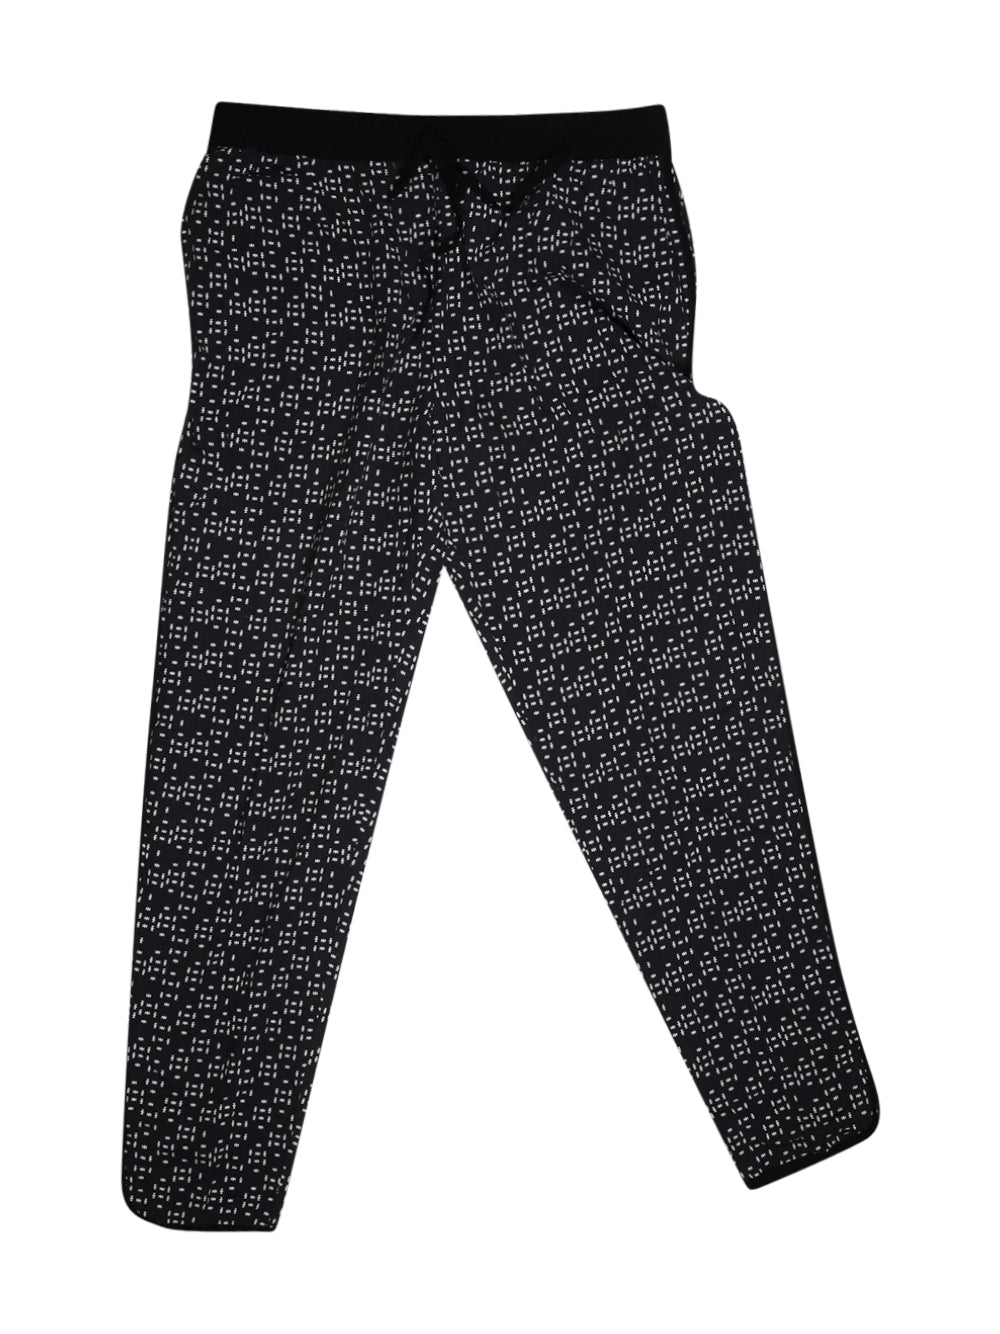 Front photo of Preloved Motivi Black Woman's trousers - size 10/M